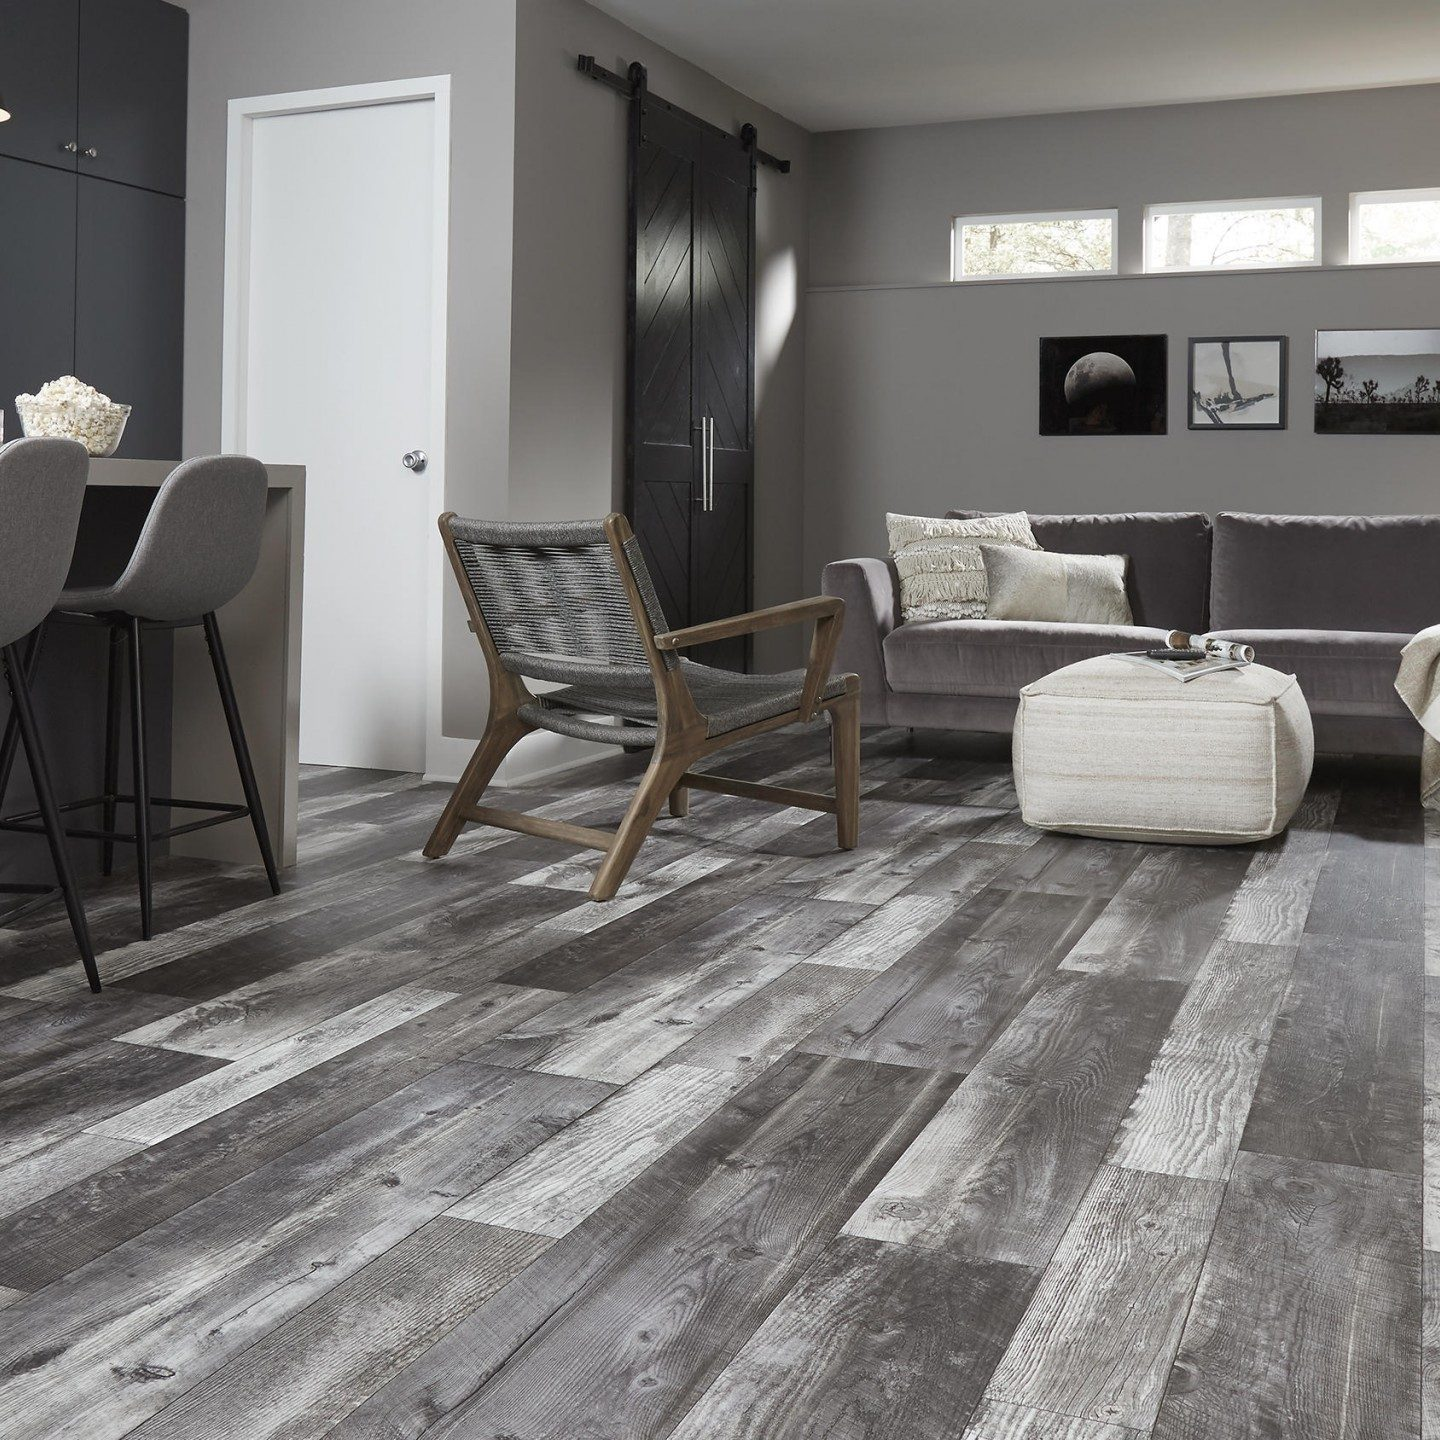 How to Maintain Laminate Floors? Find Out Here!